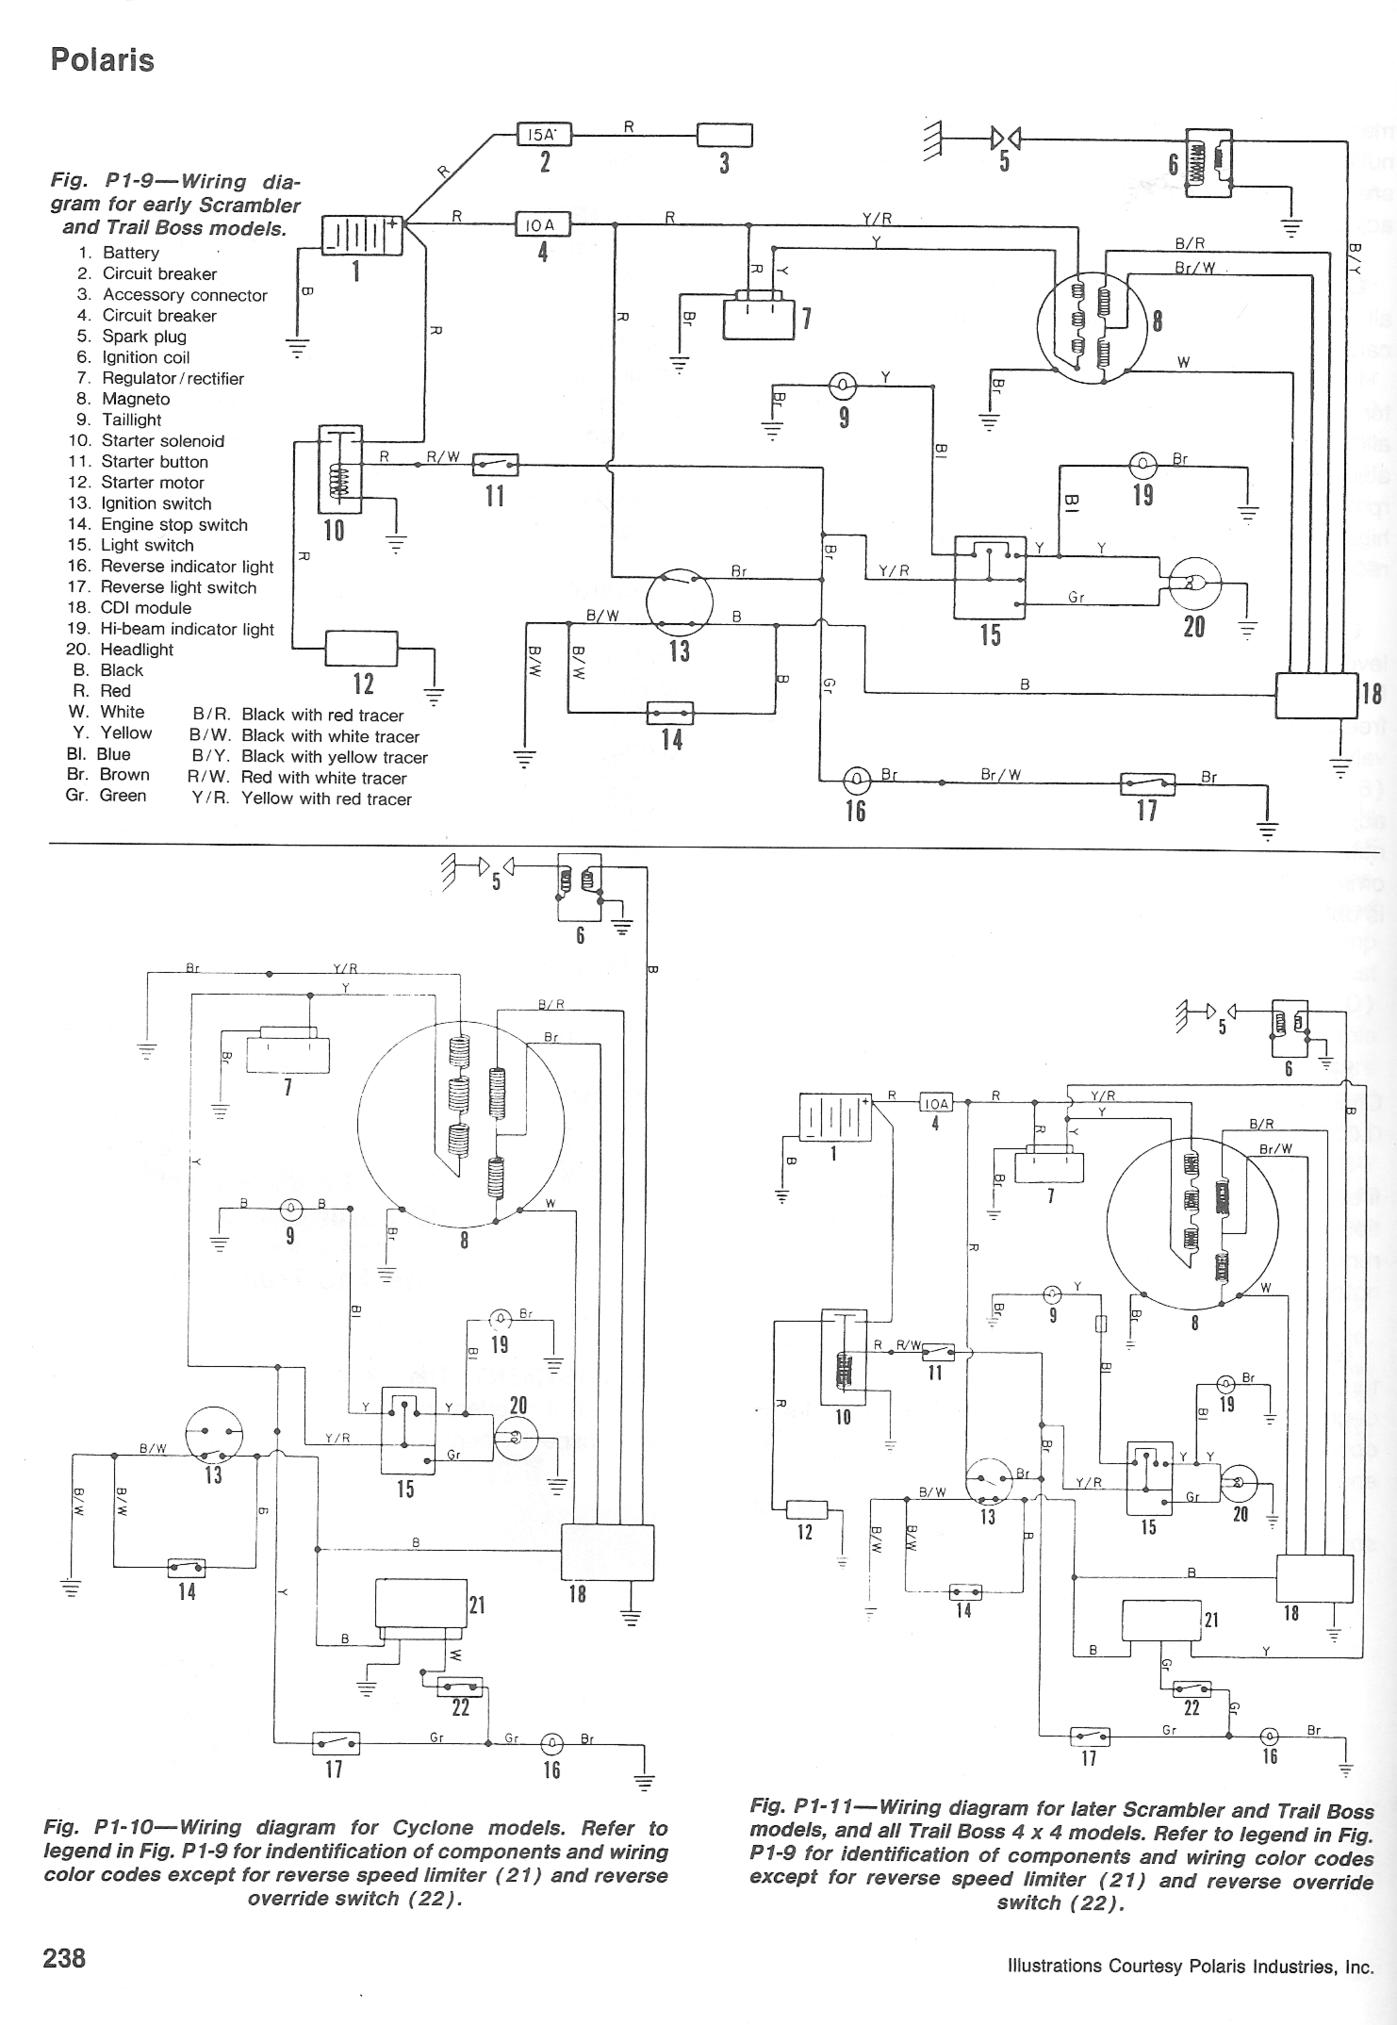 polaris scrambler 50 wiring diagram free with 214 Polaris Scrambler Wiring Diagram on Redcat Atv Mpx110 Wiring Diagram Old Style P 10421 also 2002 Polaris Scrambler 90 Wiring Diagram also Polaris Ranger 500 Engine Diagram also Polaris Five Wire Ignition Switch Wiring Diagram also Diagram.